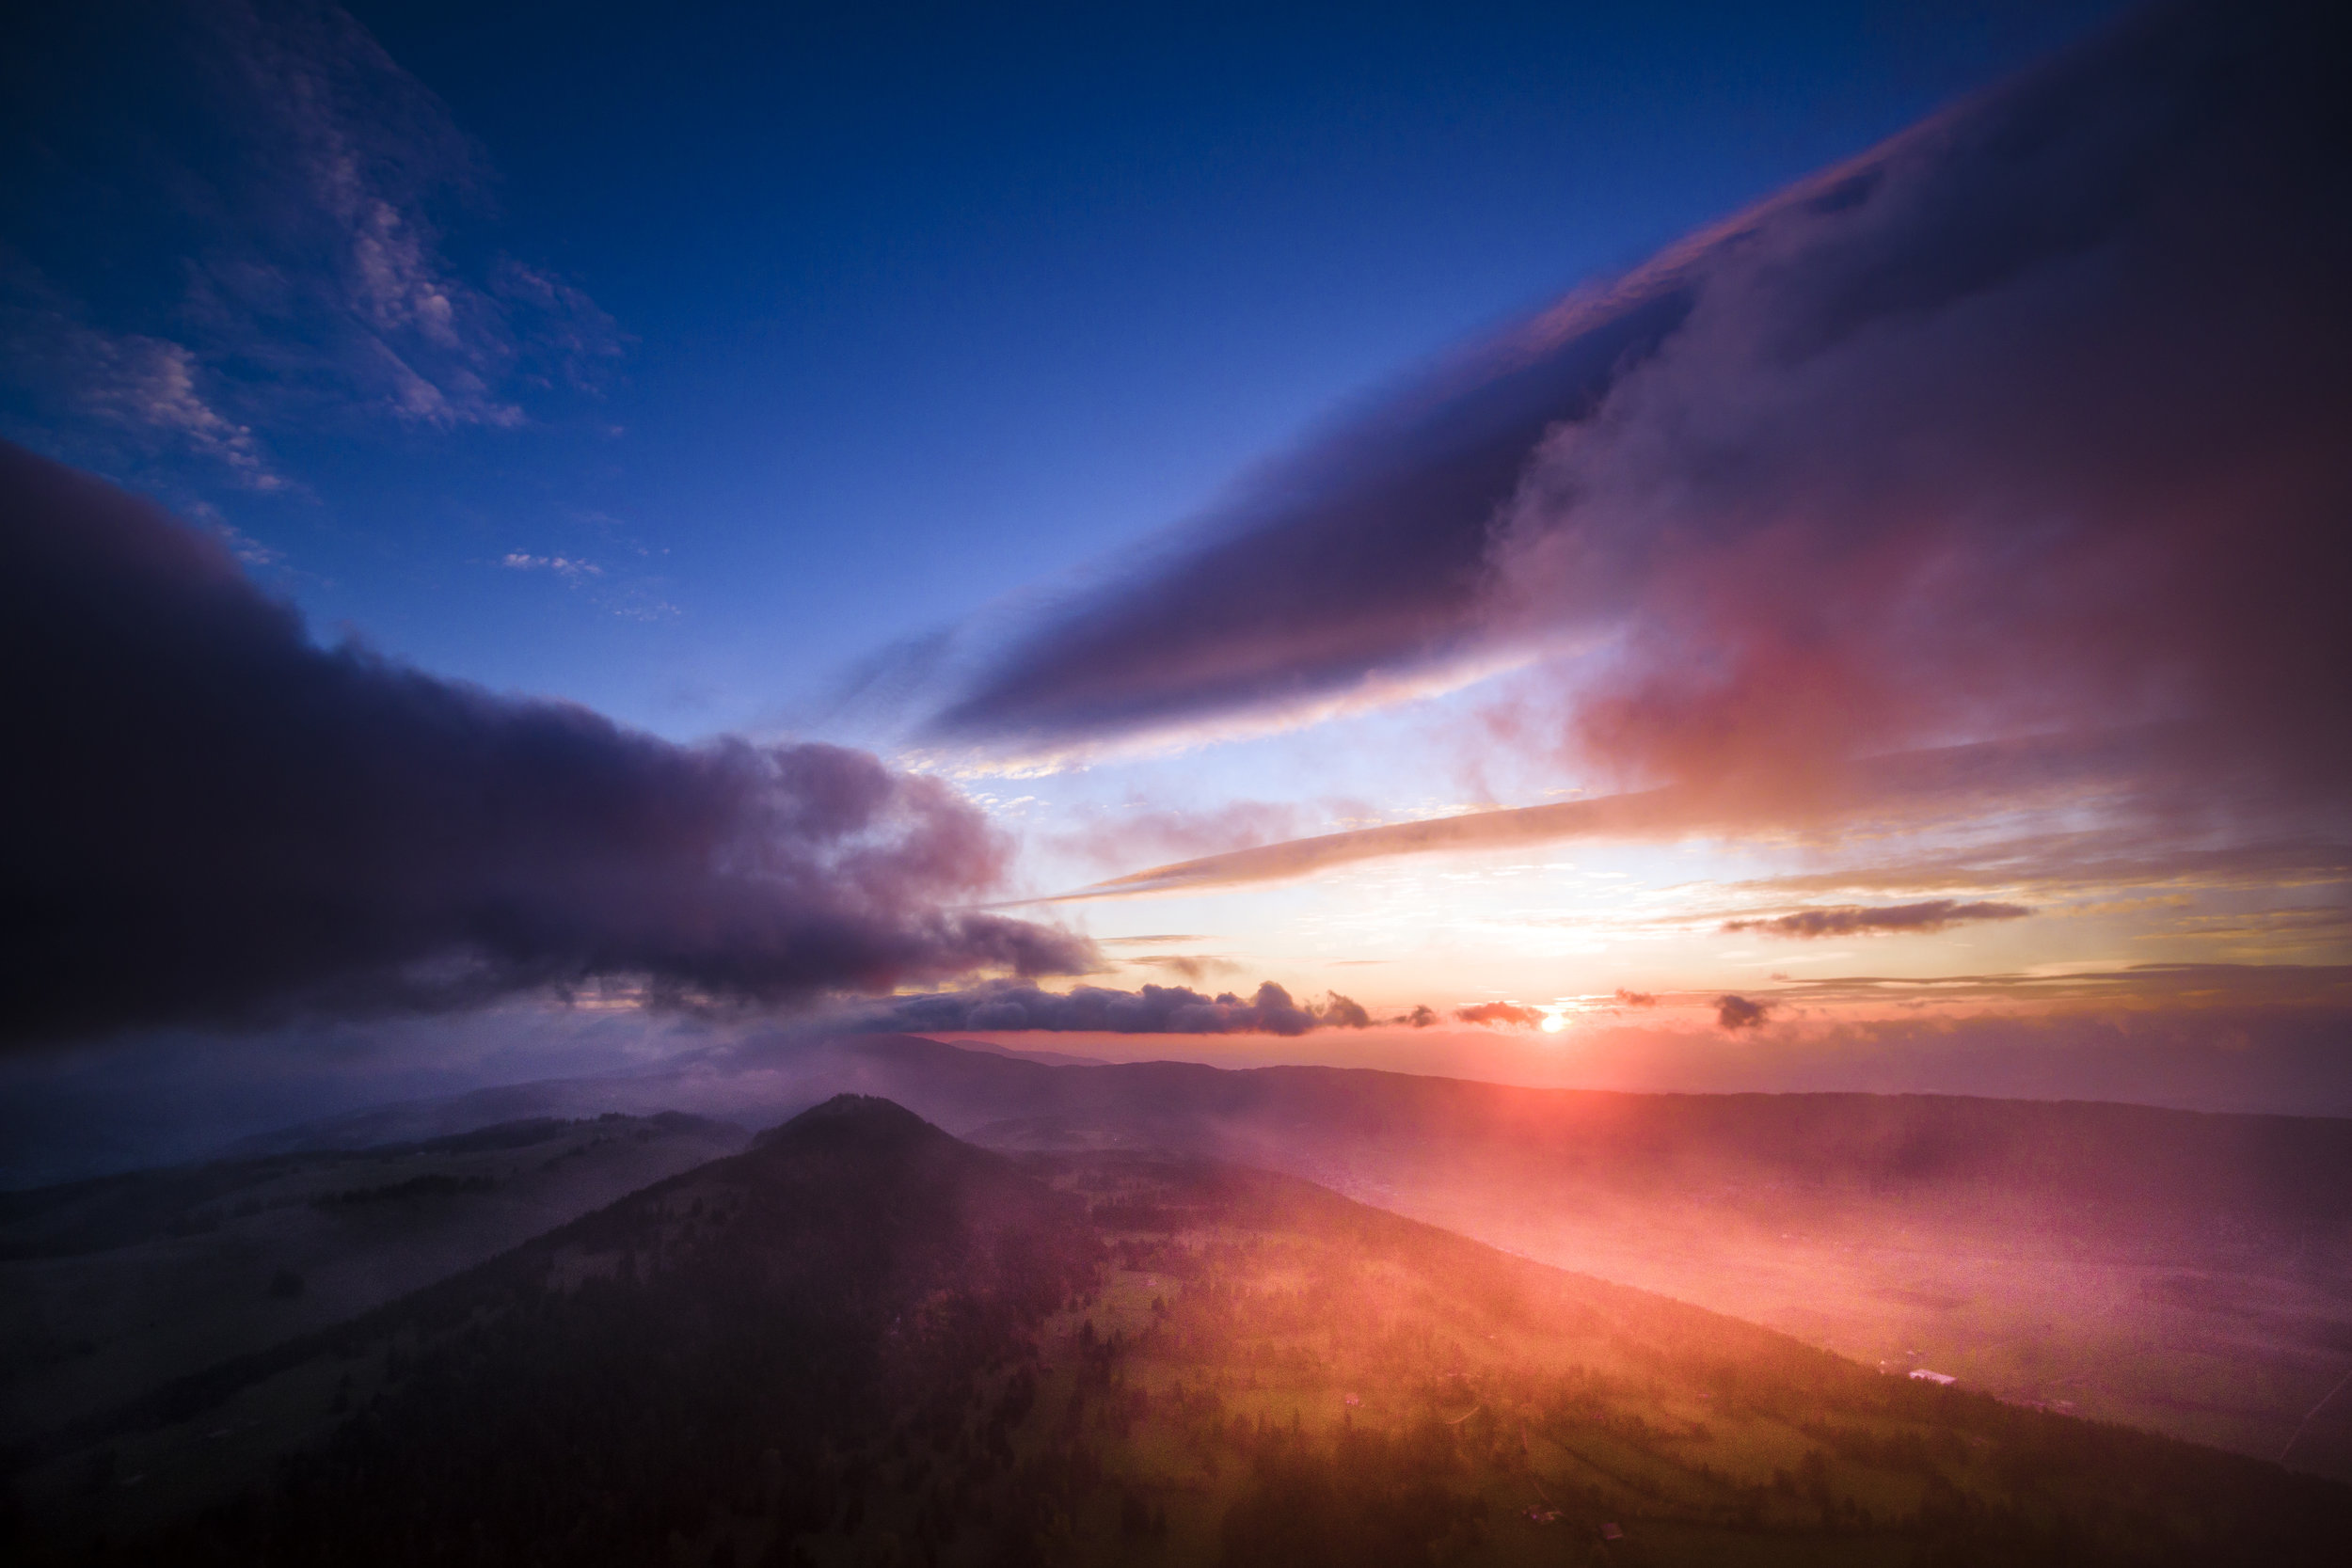 """The sunrise is pictured from the """"Vue des Alpes"""" mountain pass in Fontaines between the cities of Neuchatel and La Chaux-de-Fonds, Switzerland, Thursday, October 12, 2017. (KEYSTONE/Valentin Flauraud)"""